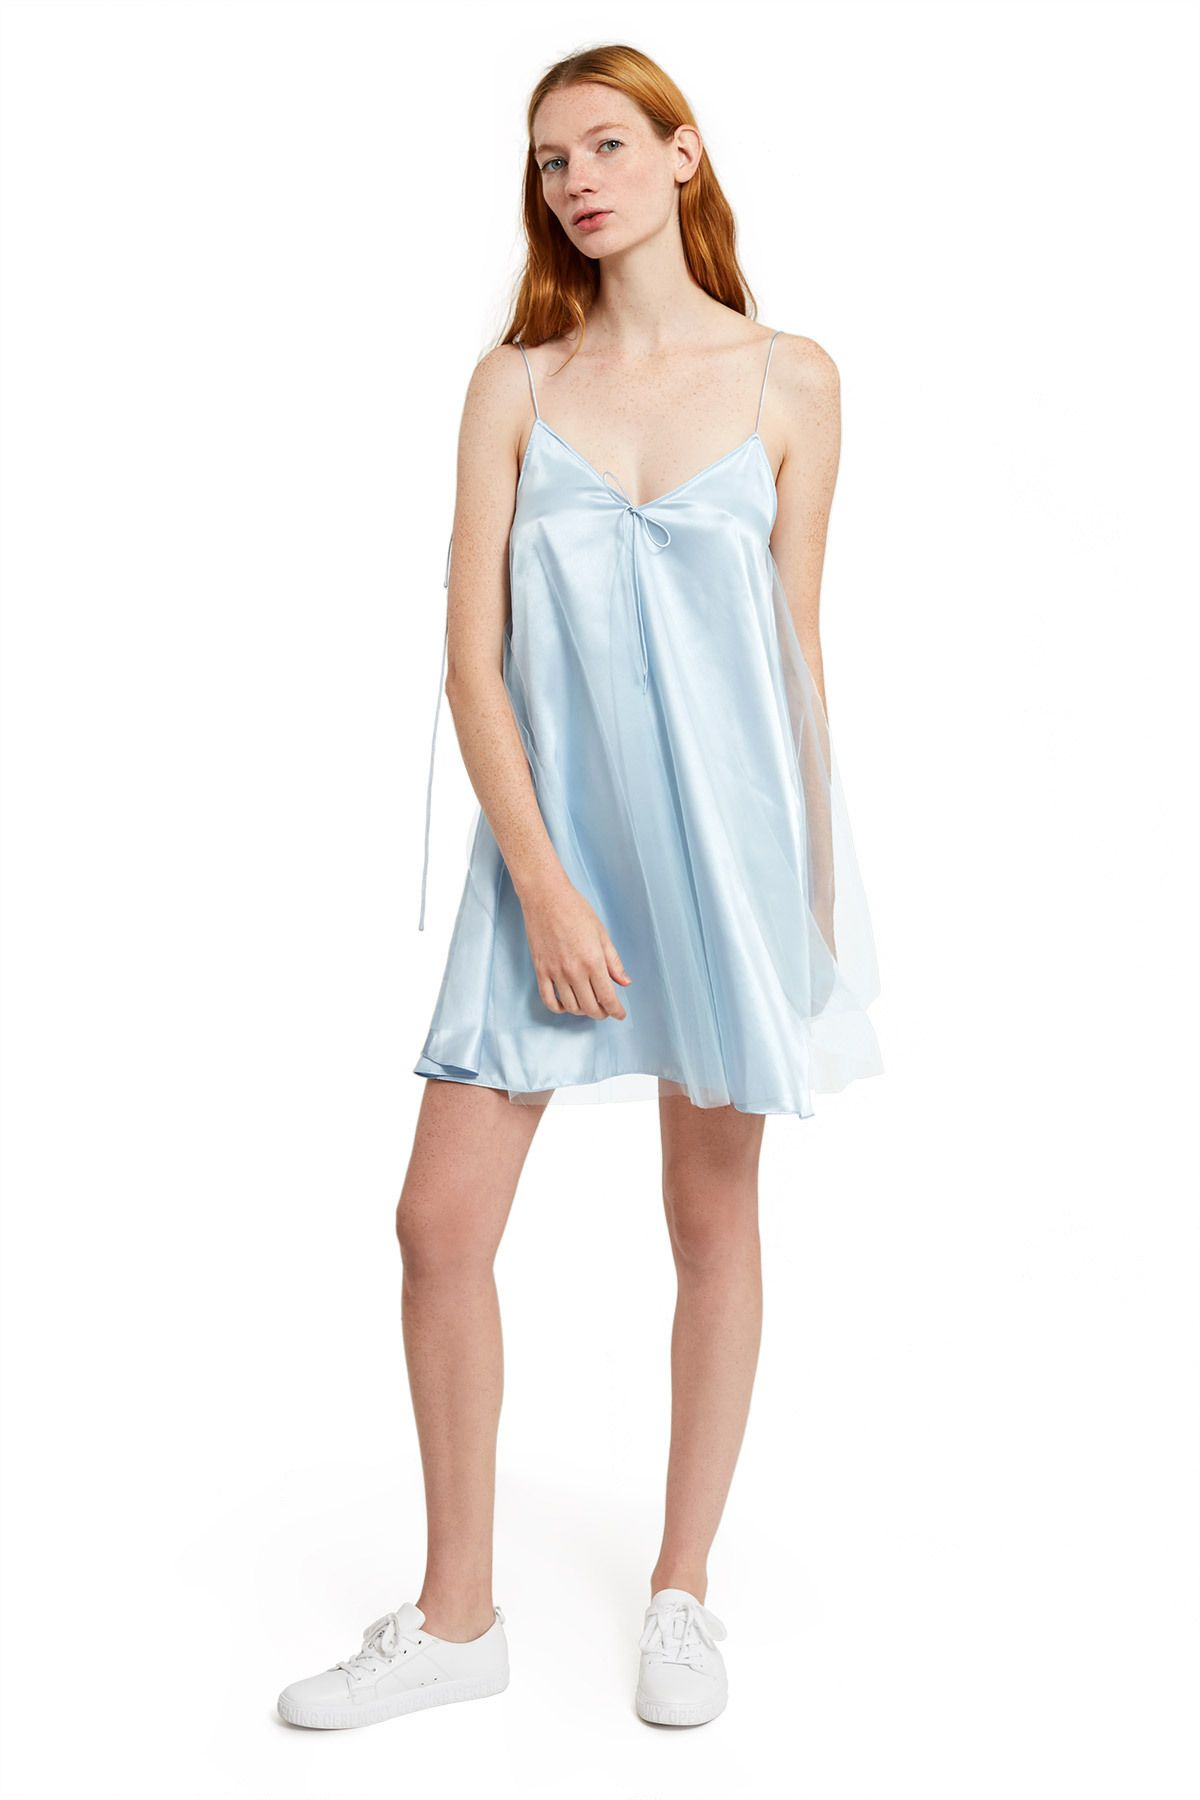 Daisy Floating Slip Dress This Flared Slip Dress Features An Opaque Baby Blue Silk Underlayer And An Overlay Of Tonal She Clothes For Women Dresses Slip Dress